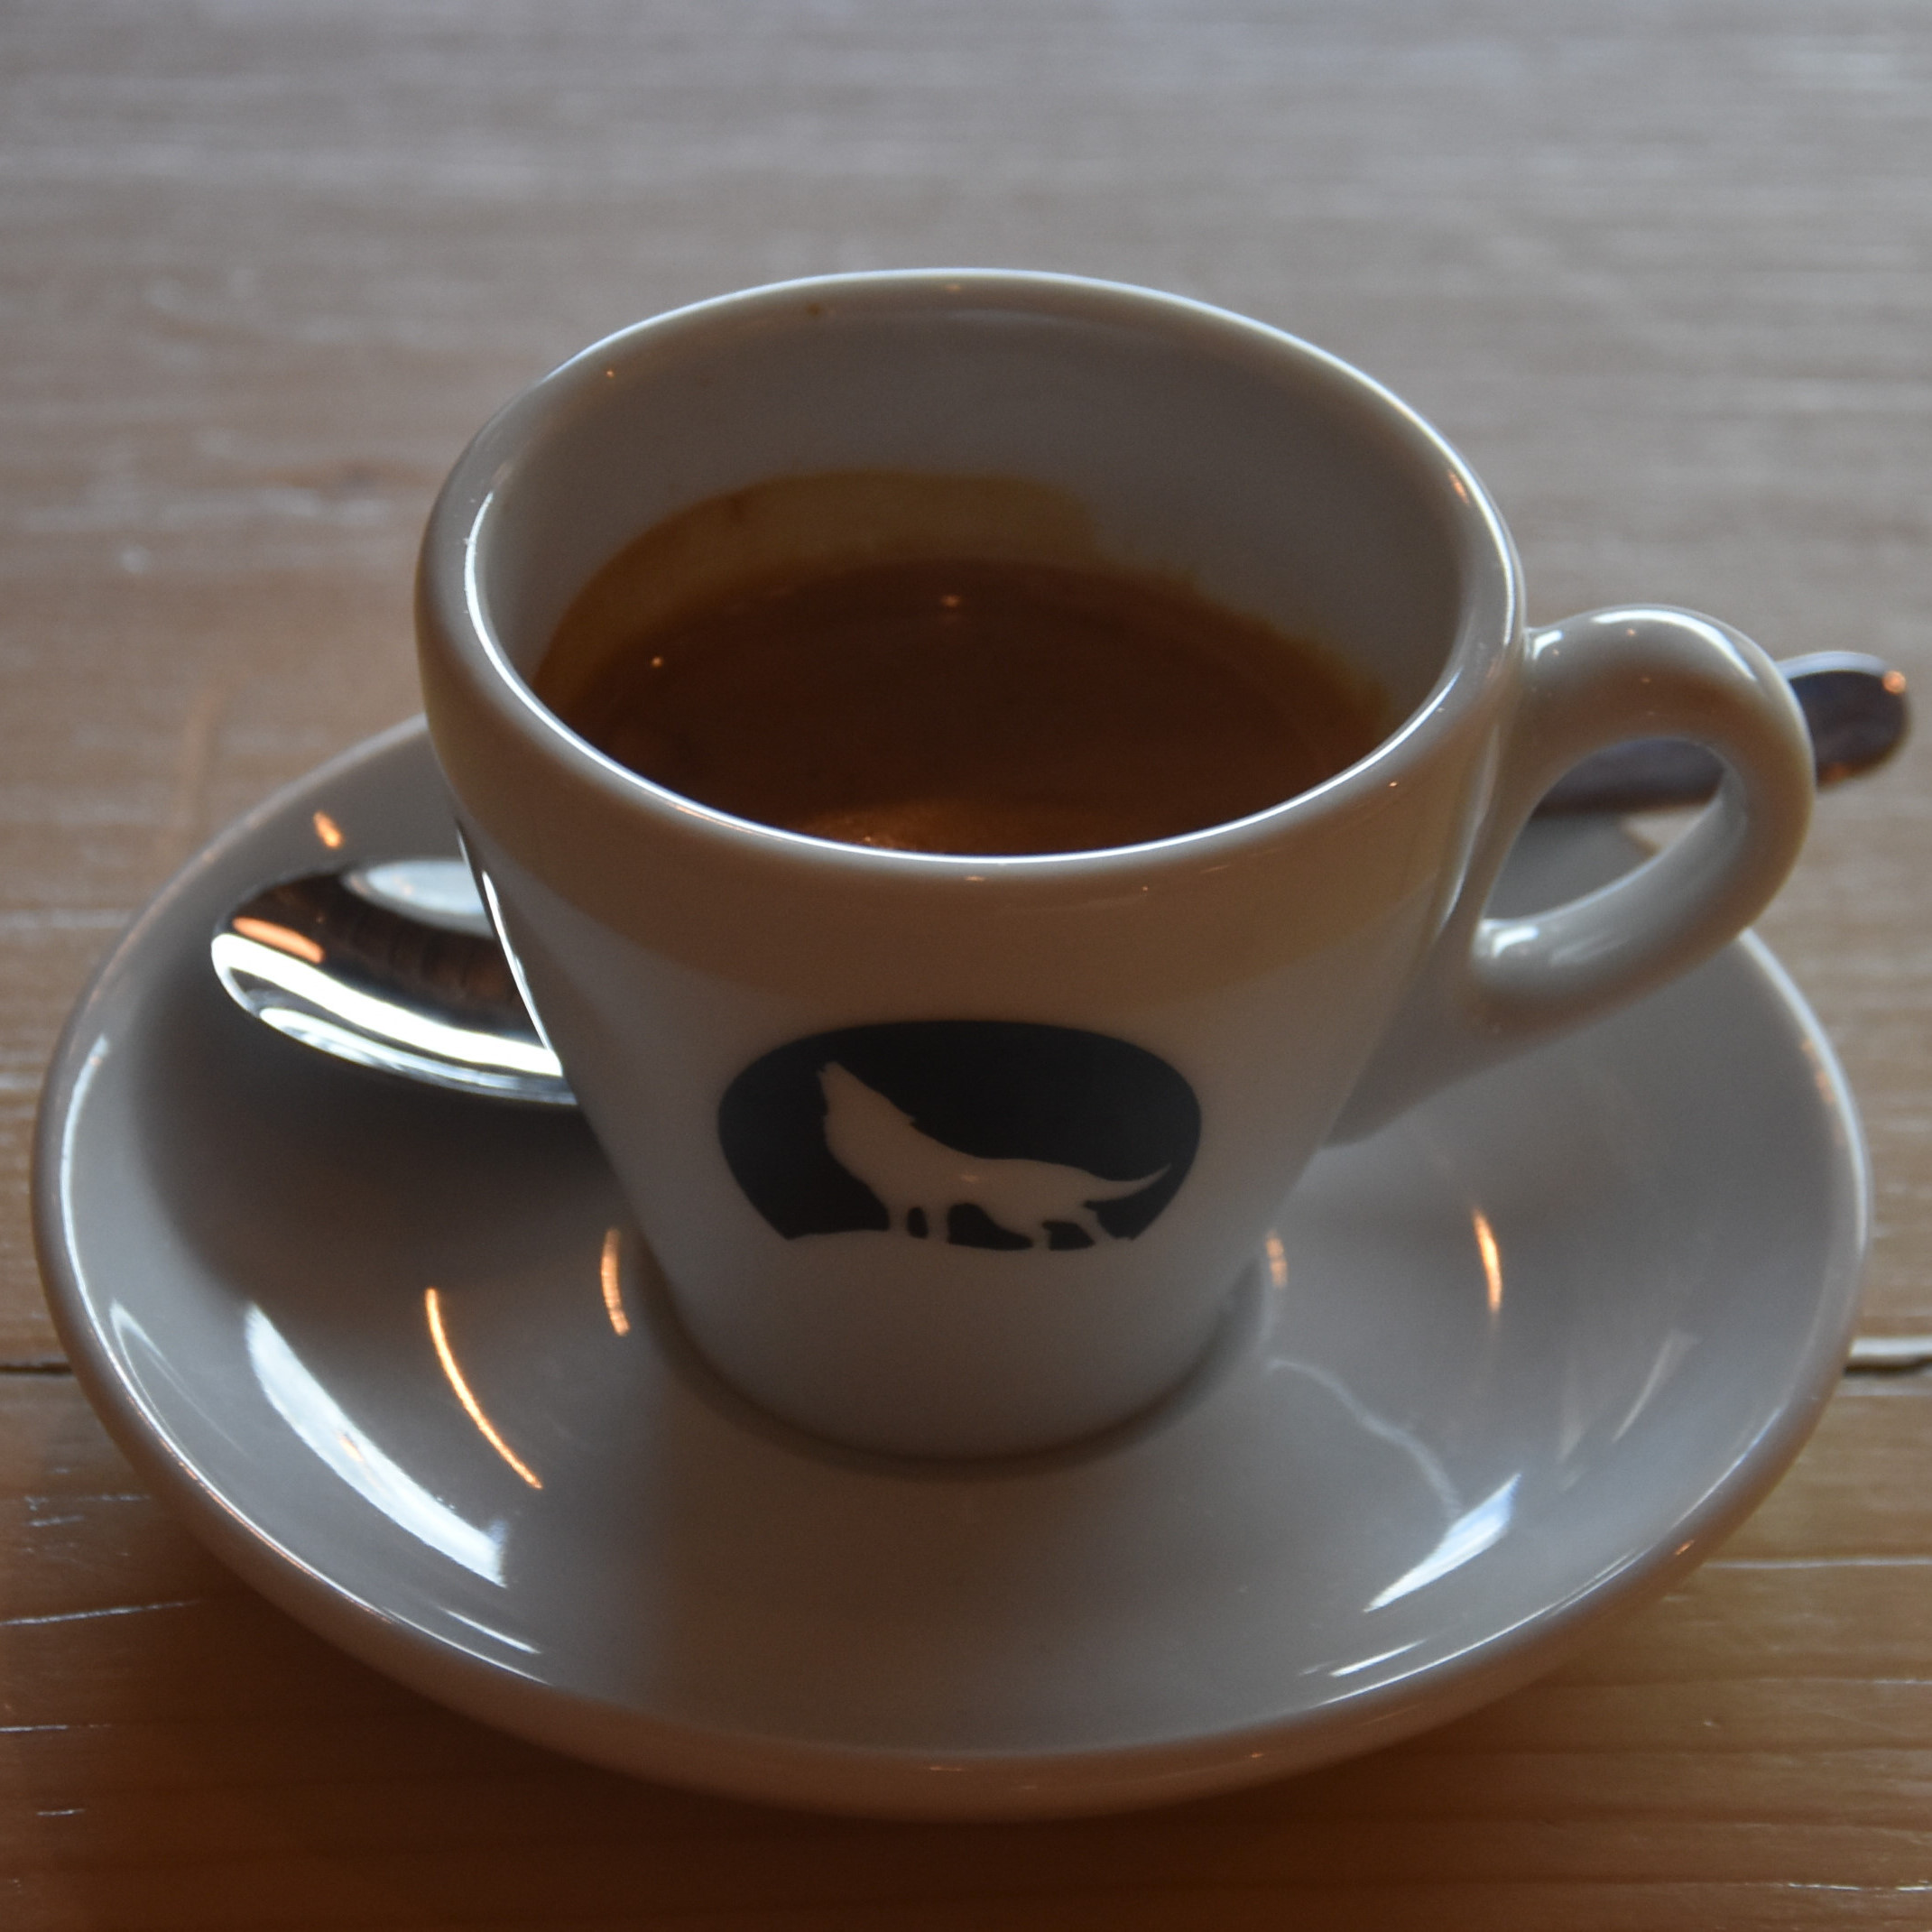 An El Salvador single-origin espresso from Clifton Coffee Roasters in a classic white espresso at Big Bad Wolf Coffee.